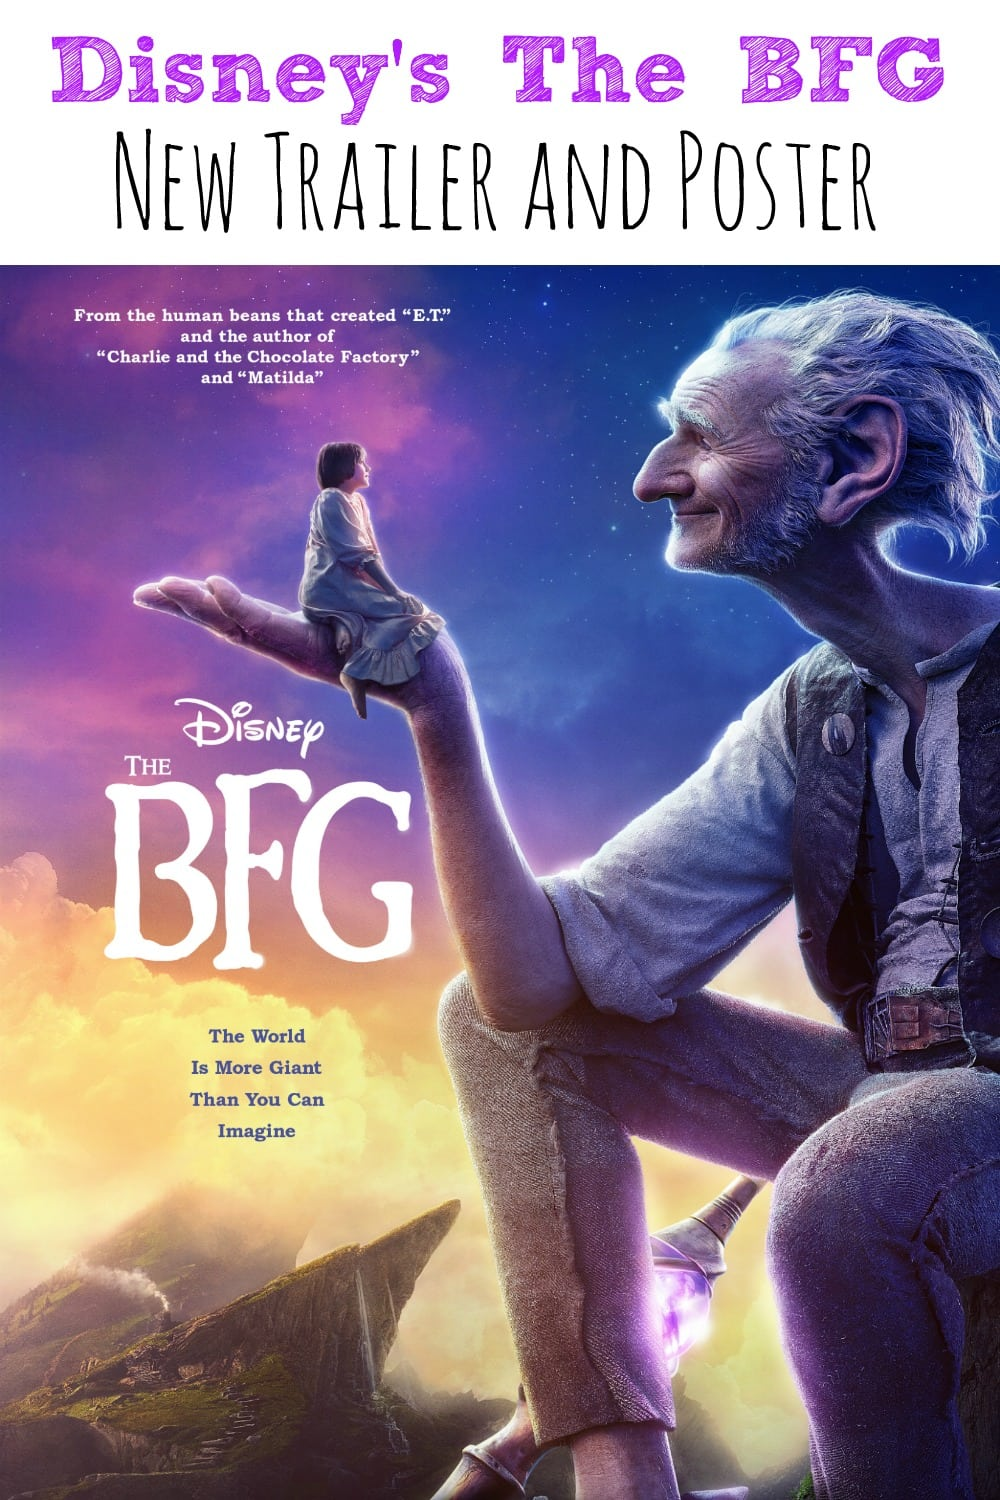 Disney's the BFG Post and Trailer